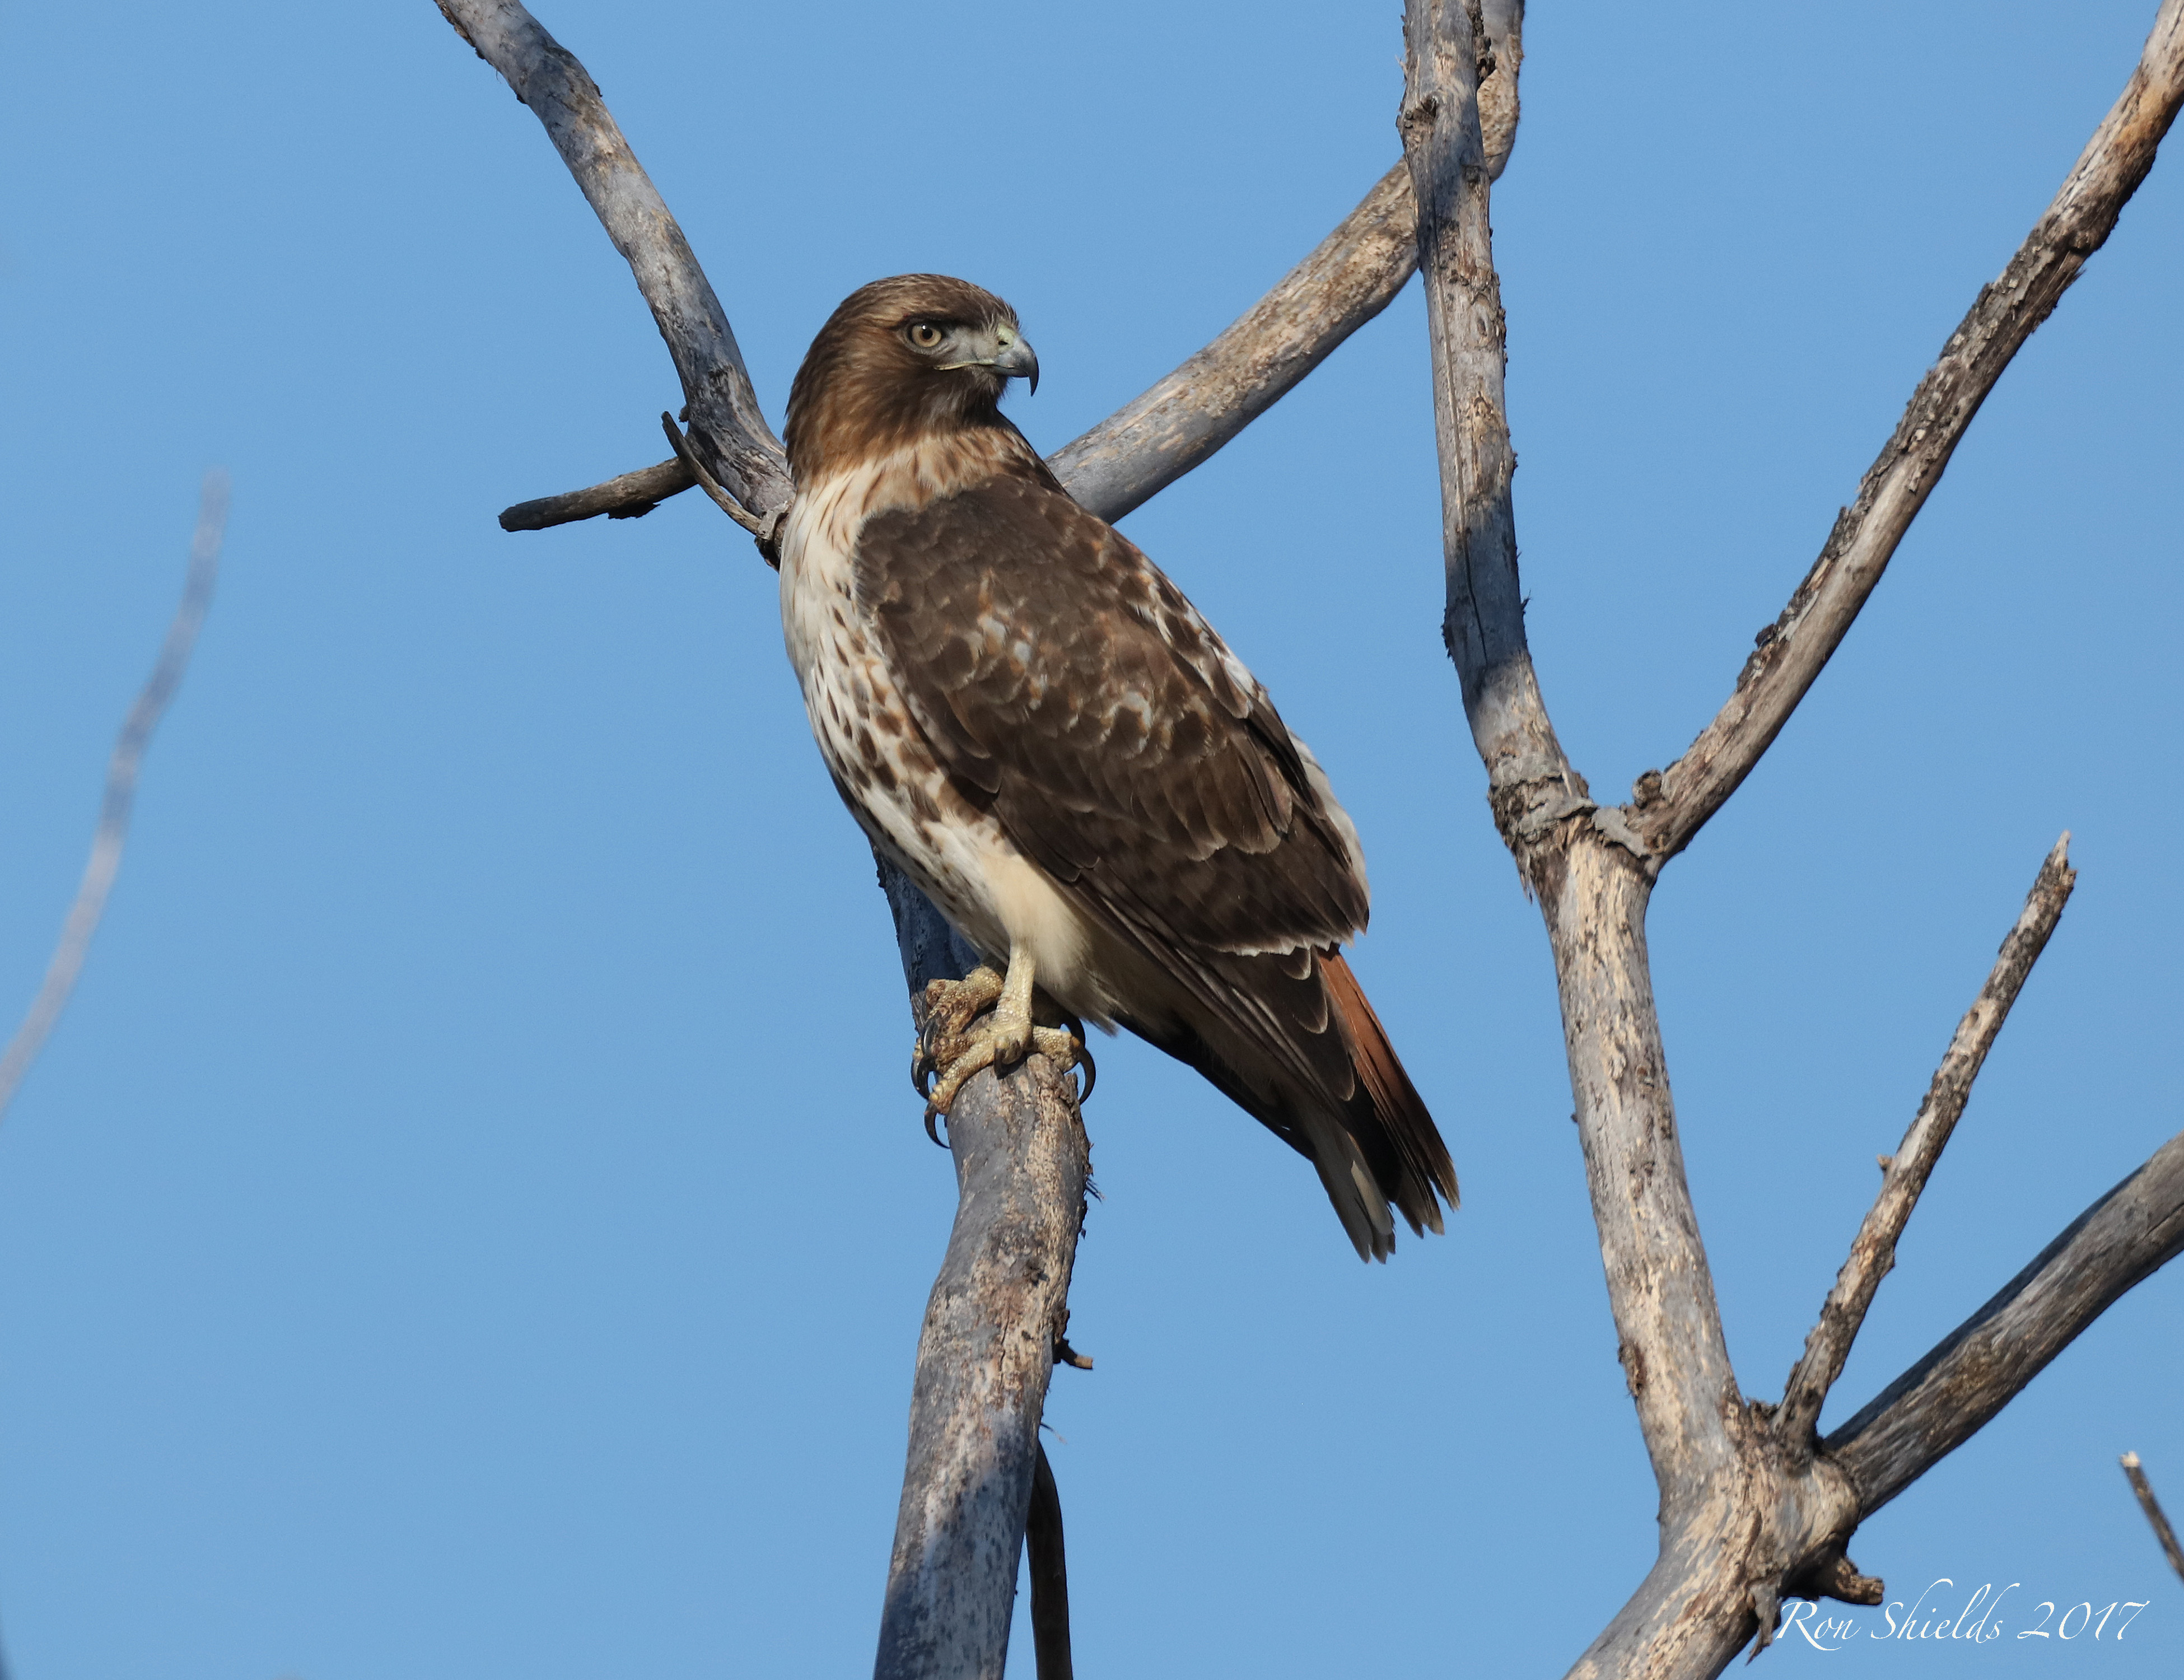 Adult Red-tailed Hawk at River Barge Park